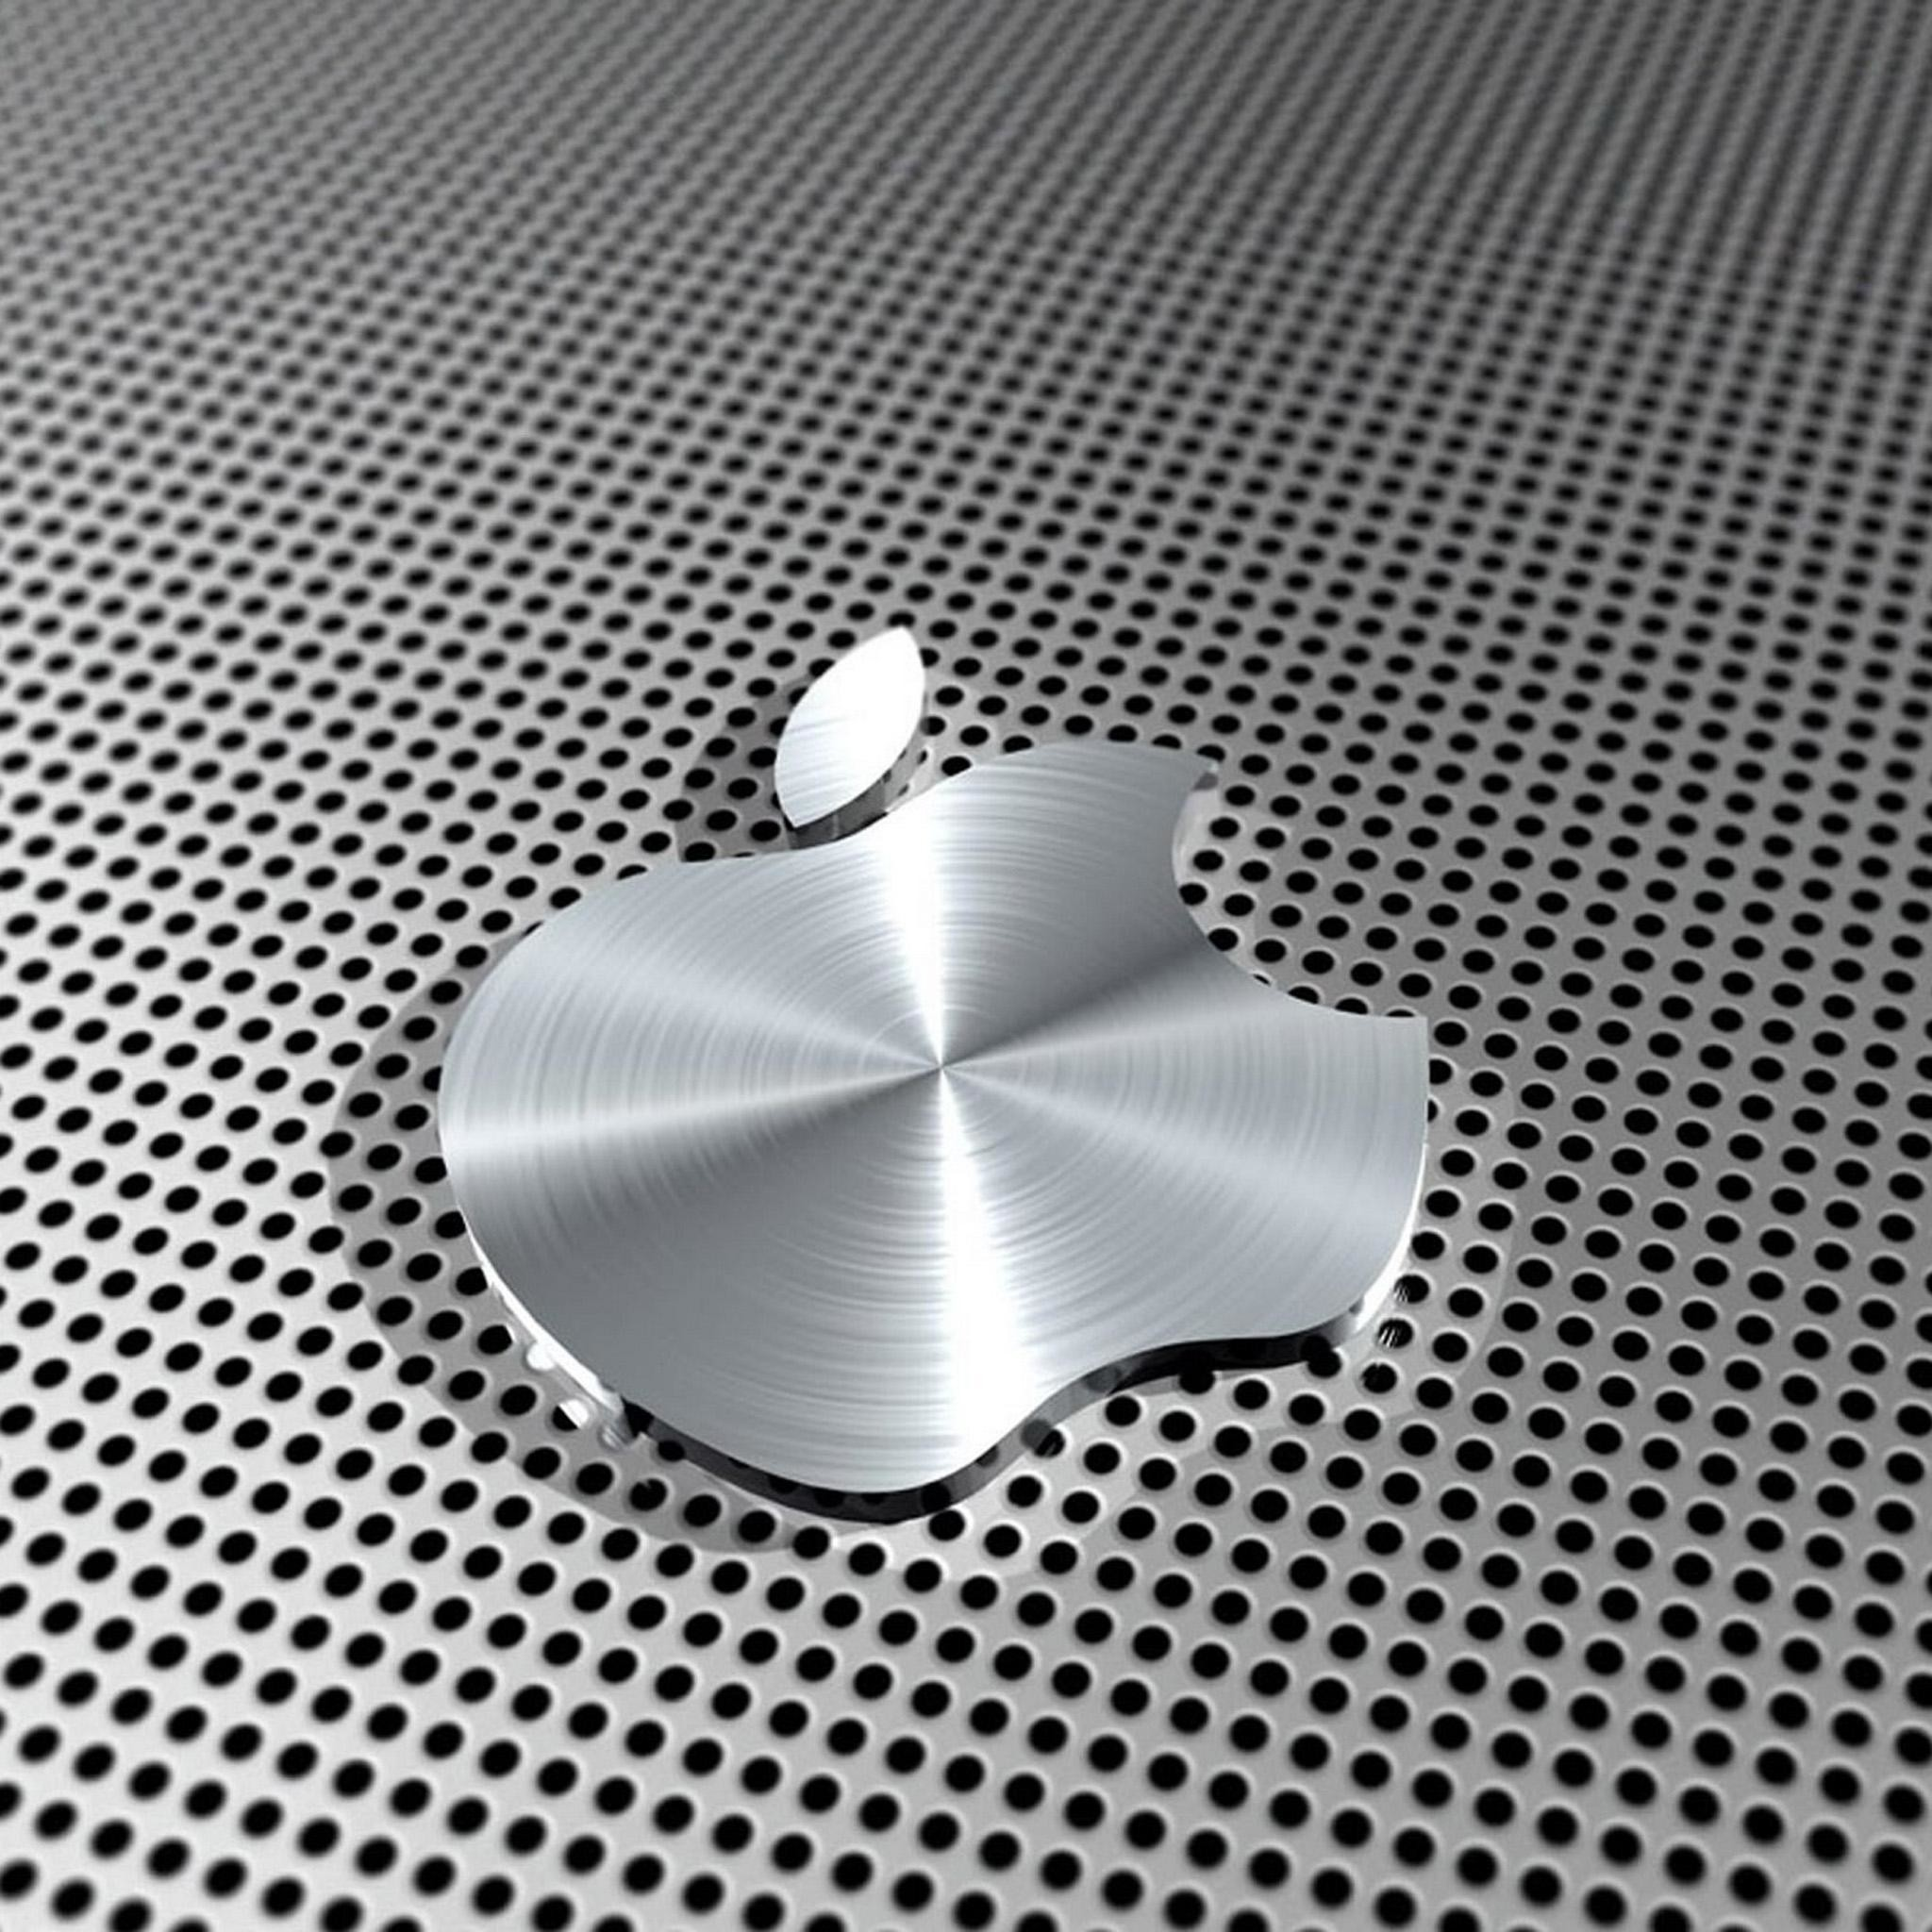 Ipad Retina Hd Wallpaper Apple Logo In Steel Data Src 1 World Financial Center 2048x2048 Wallpaper Teahub Io